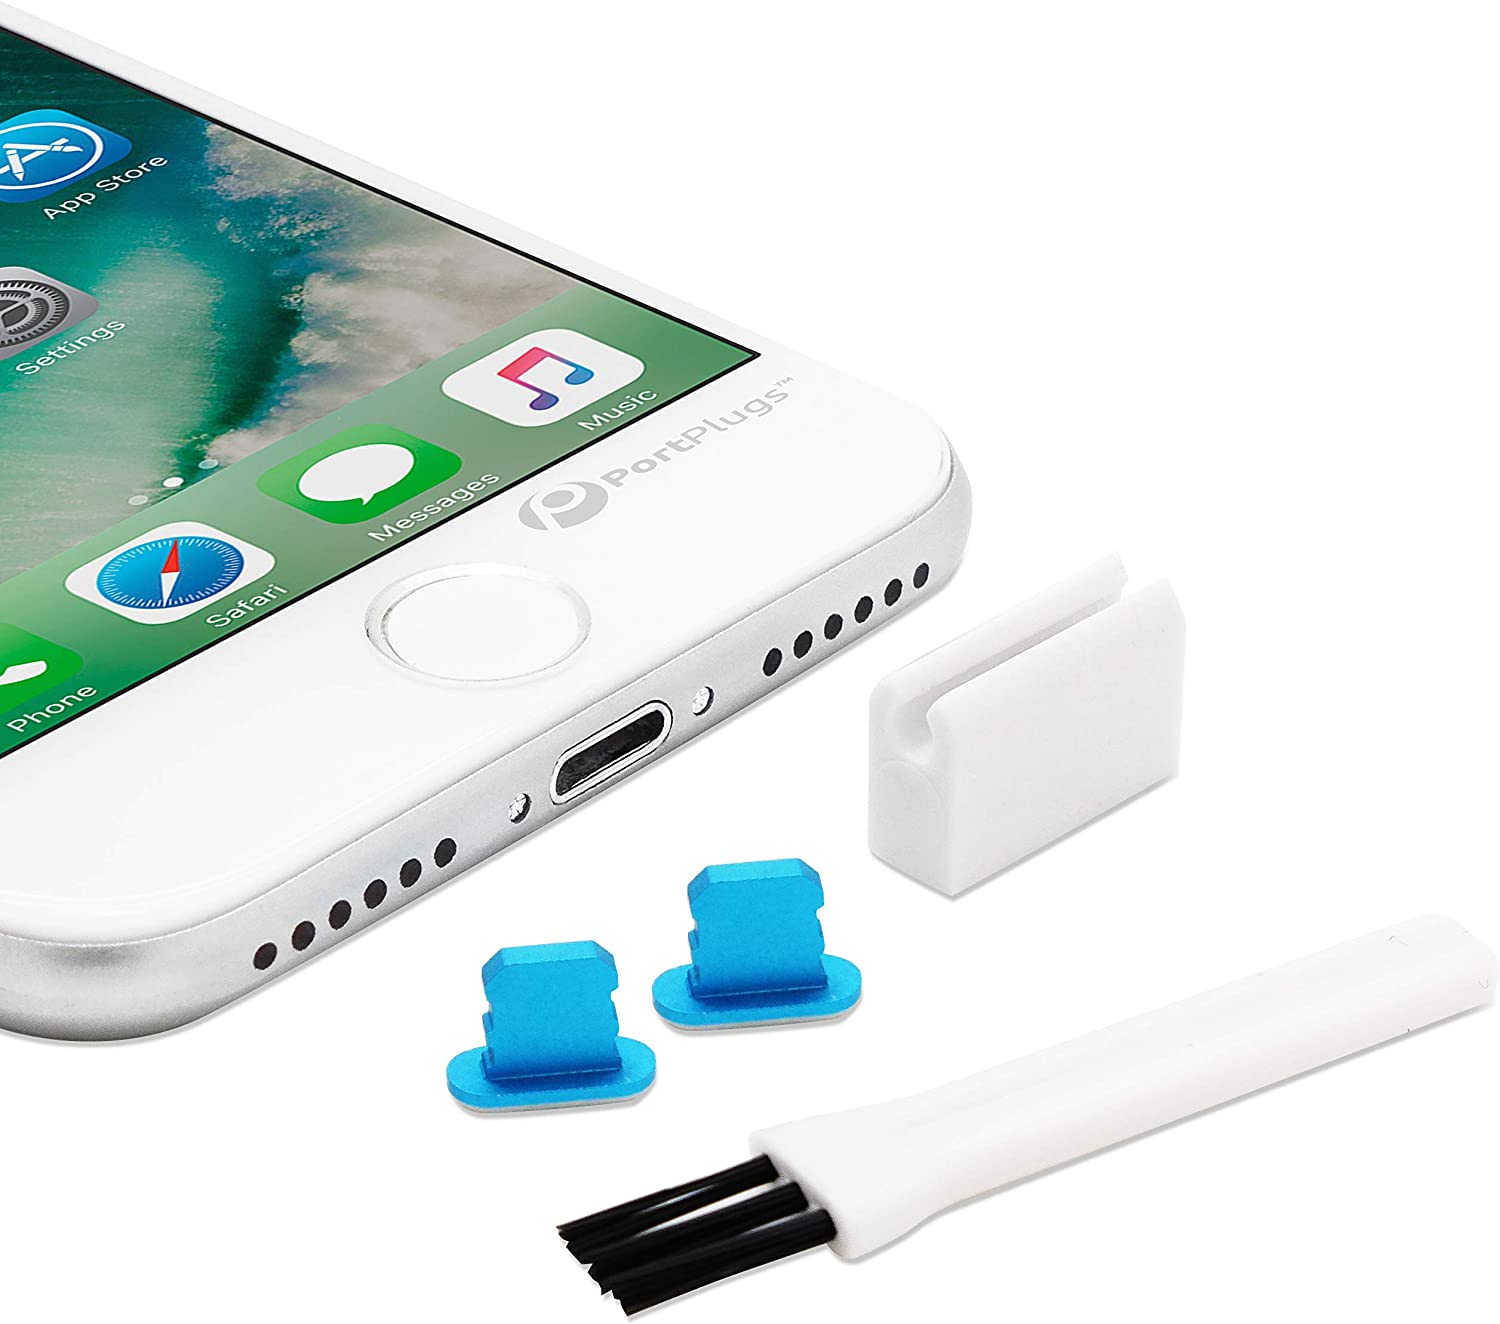 PortPlugs Dust Plugs (2 Pack) Aluminum, Compatible with iPhone 12, 11, X, XS, XR, 8, 7, Plus, Max, Pro, Includes Plug Holder and Cleaning Brush (Blue)